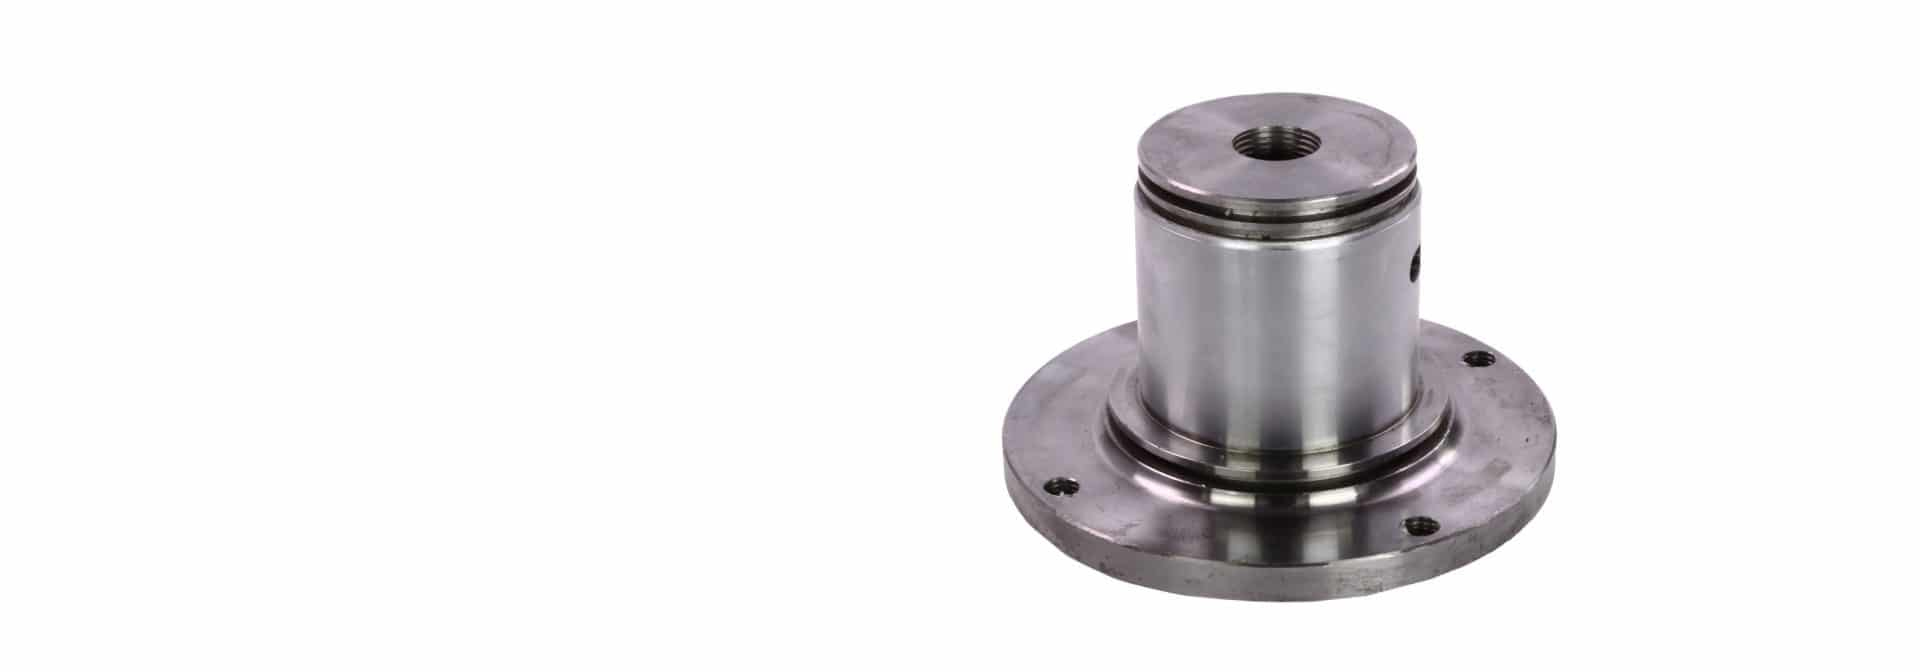 Product made by closed die forging